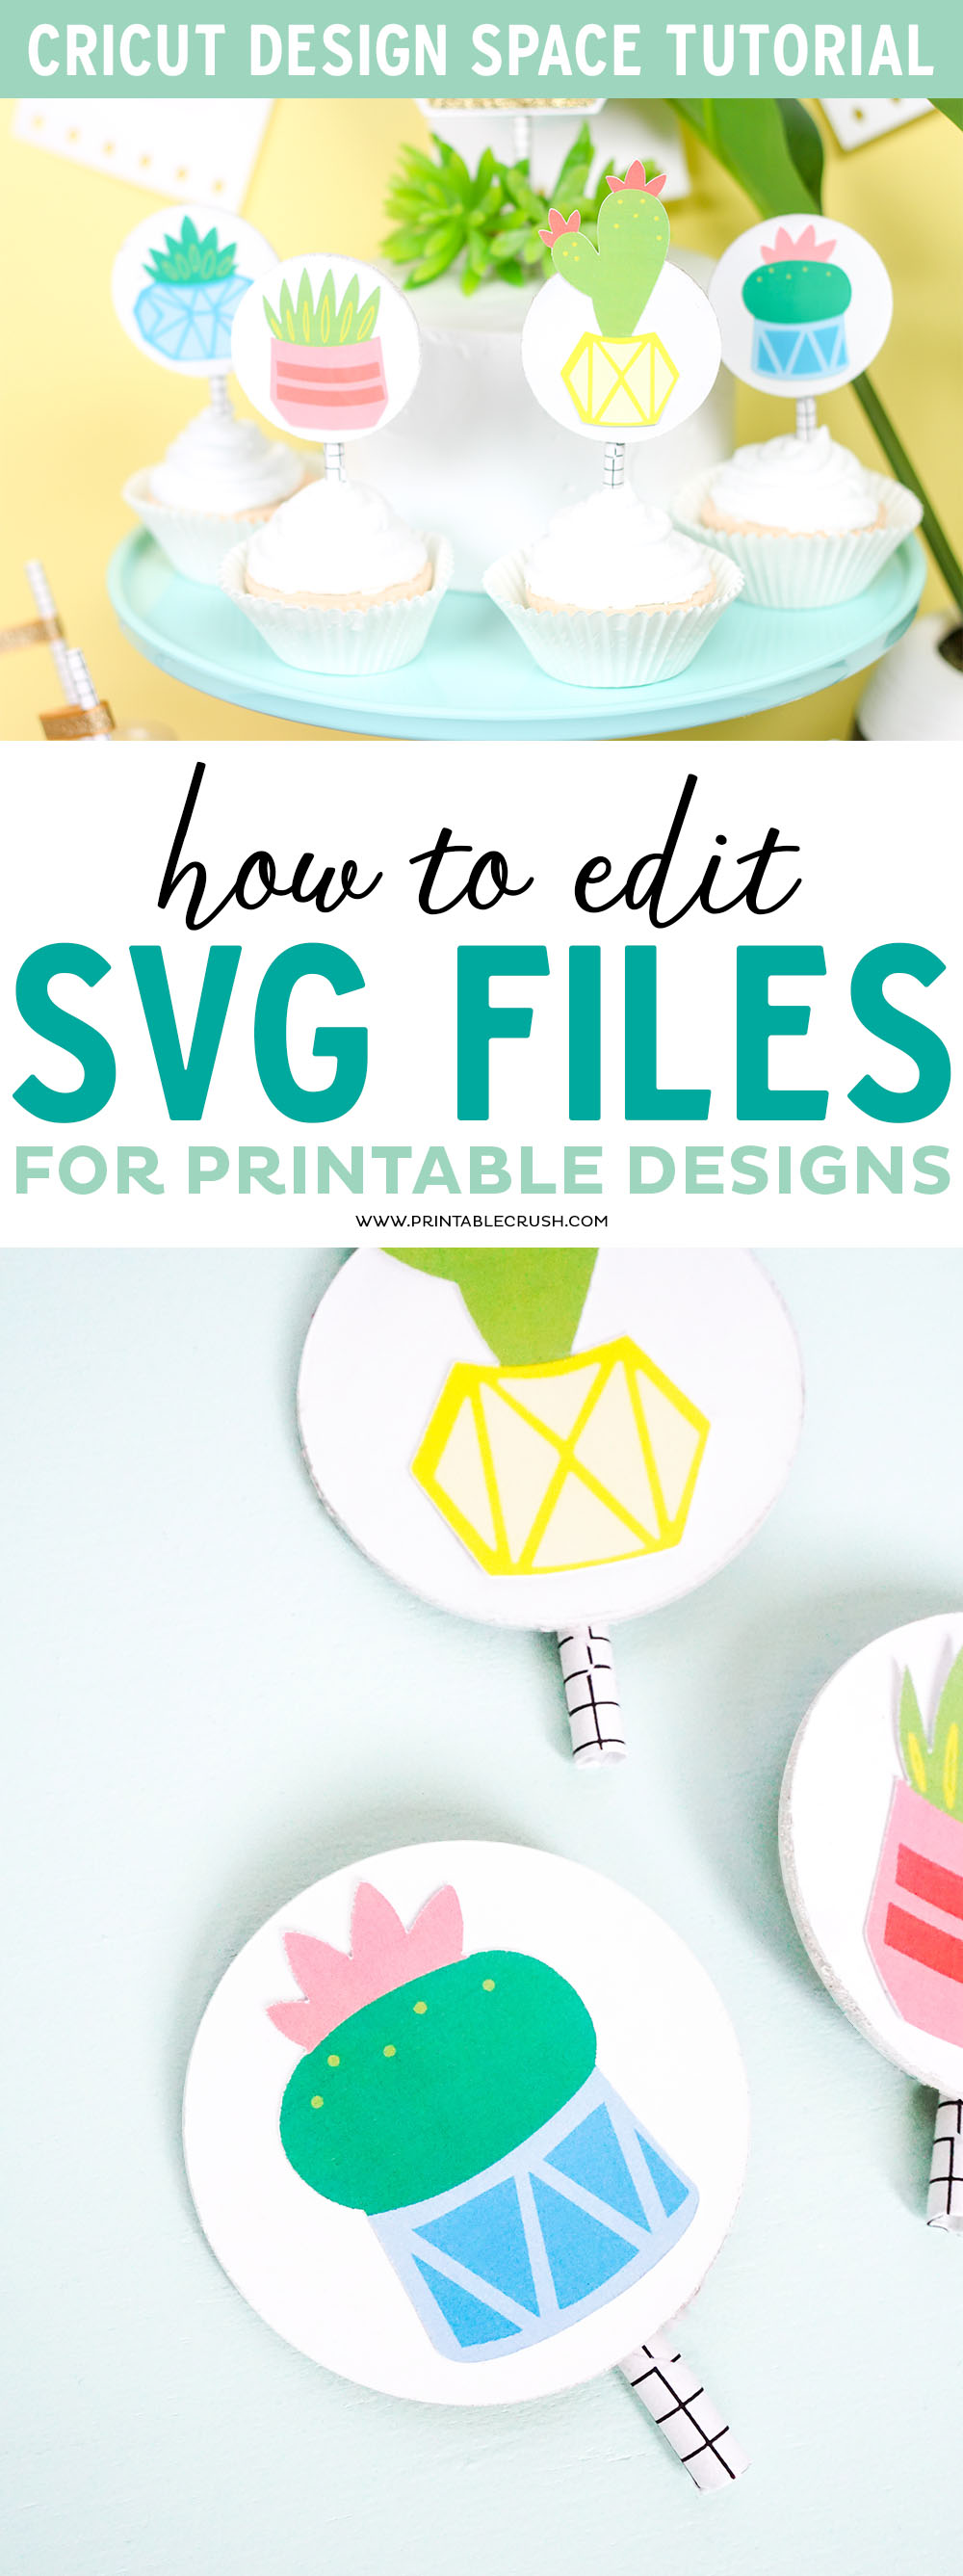 Create printable designs in Cricut Design Space by editing SVG files!